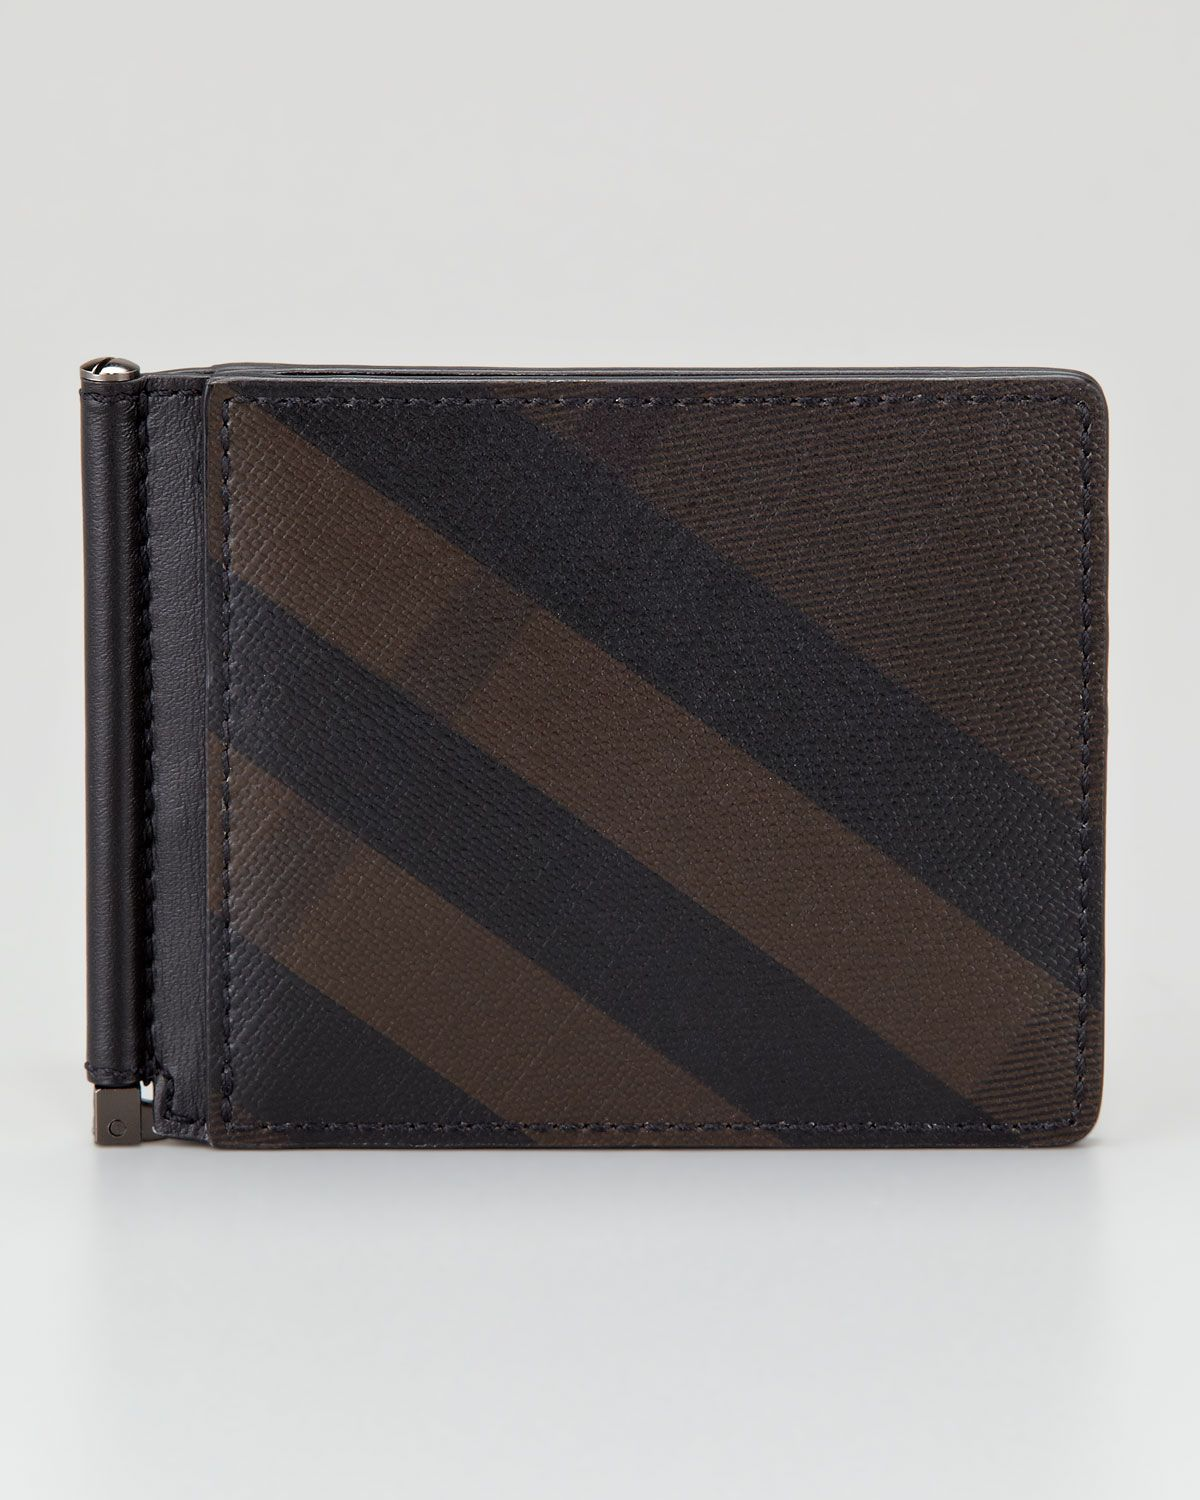 30473f3b1c5d Burberry Smoked Check Leather Money Clip Wallet | Men's Fashion ...